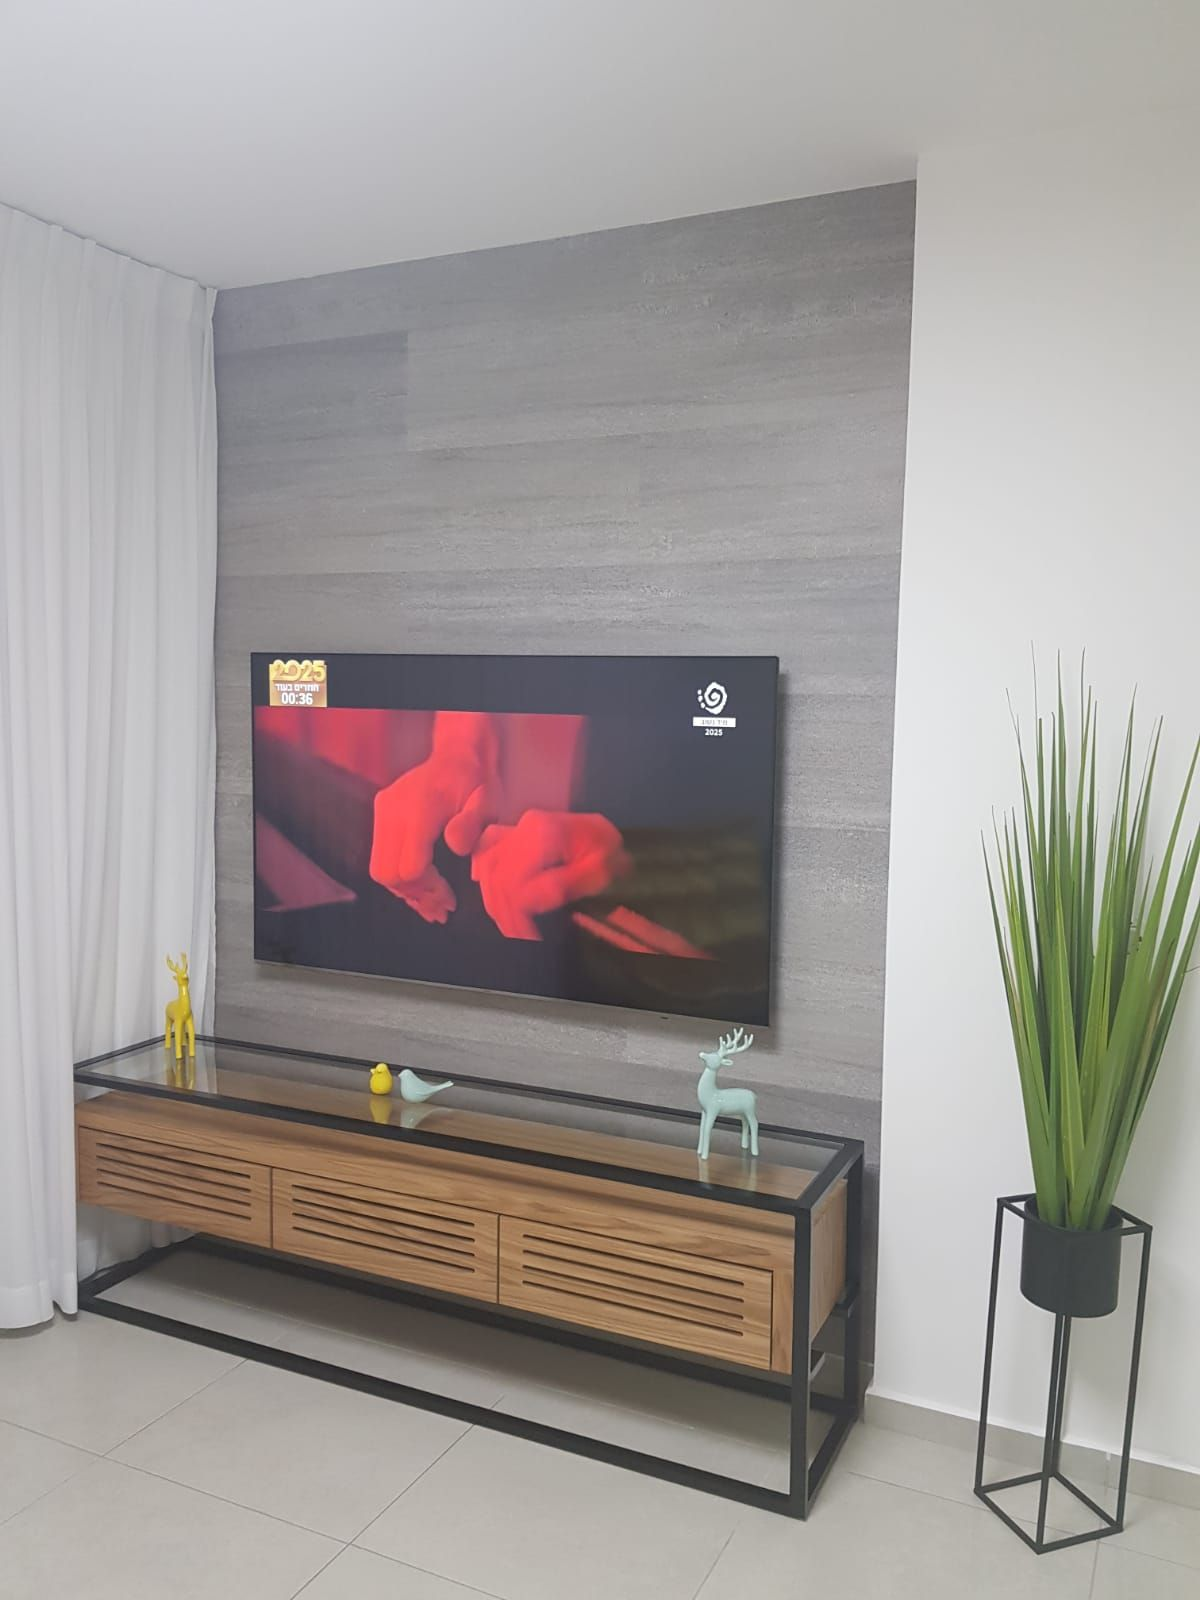 Pin by on Wall cllading Wall, Flat screen, Tvs